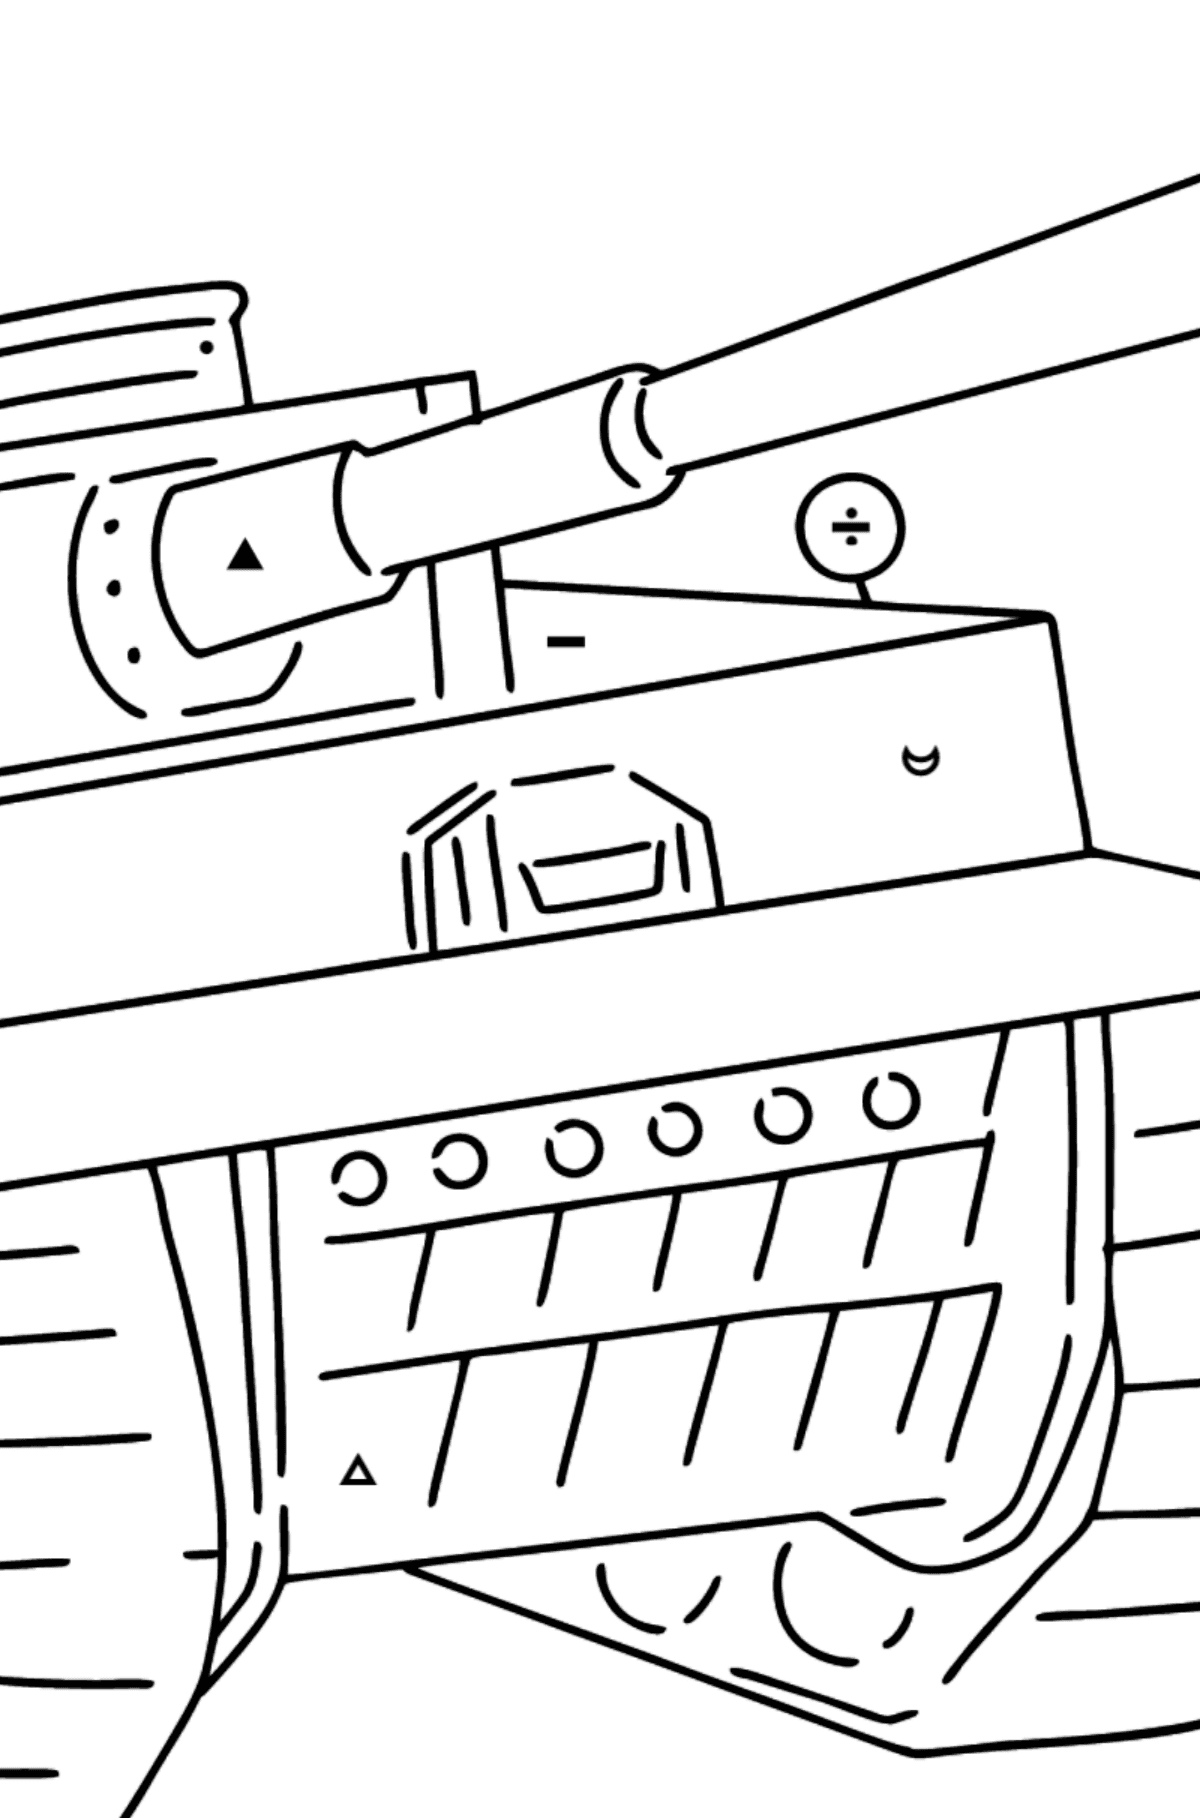 Tank Panther coloring page - Coloring by Symbols for Kids